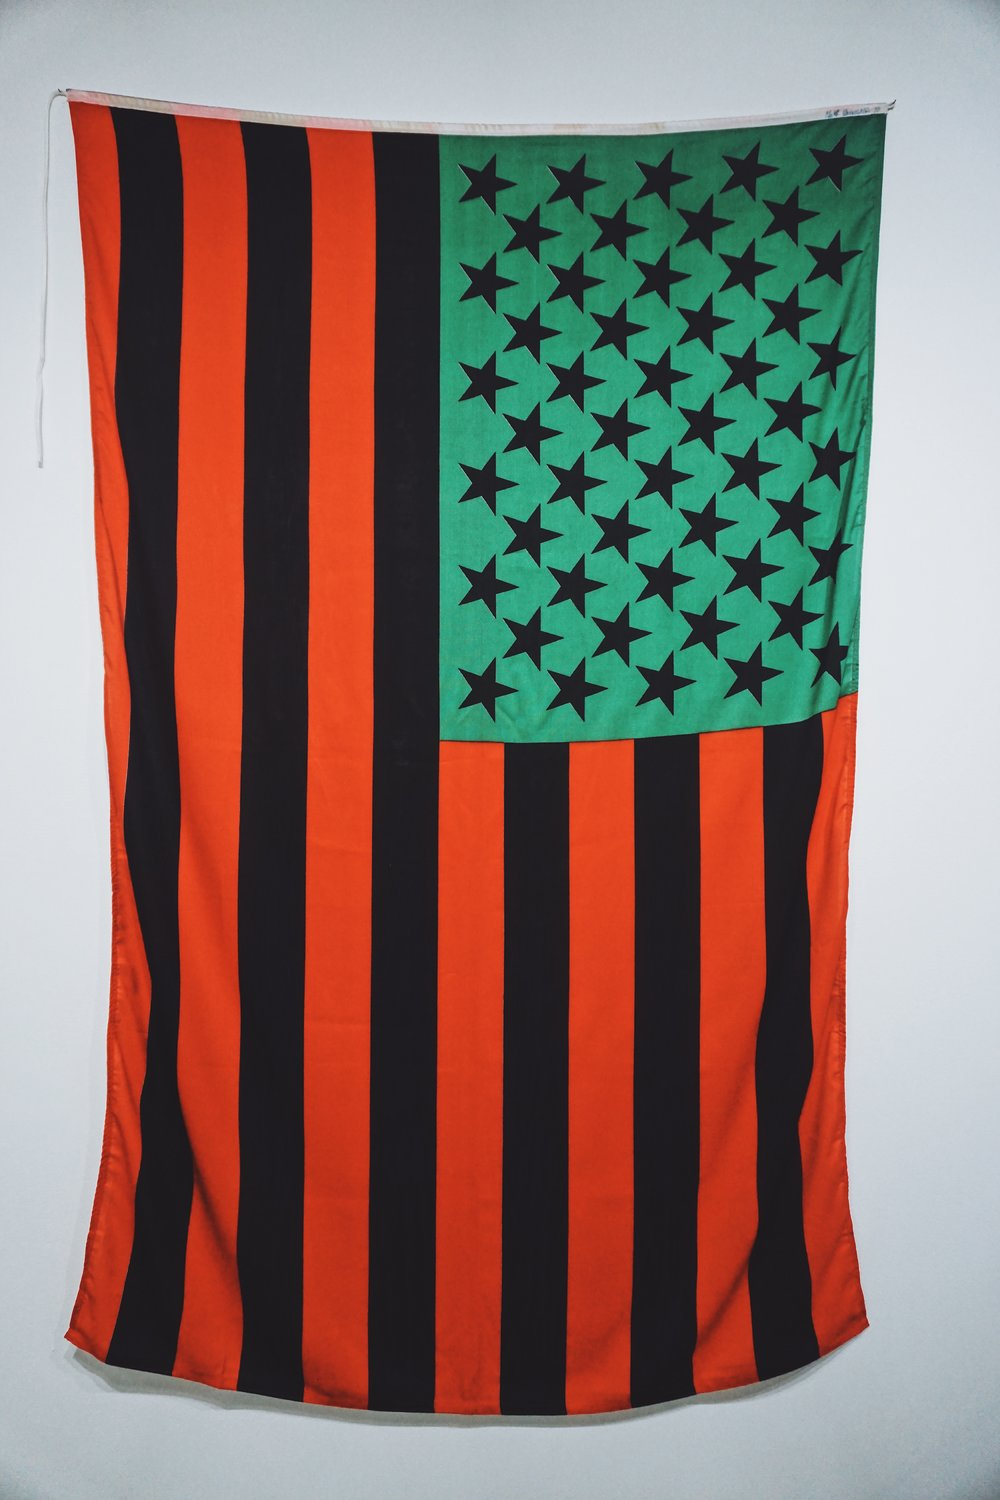 David Hammons.  African American Flag,  1990.